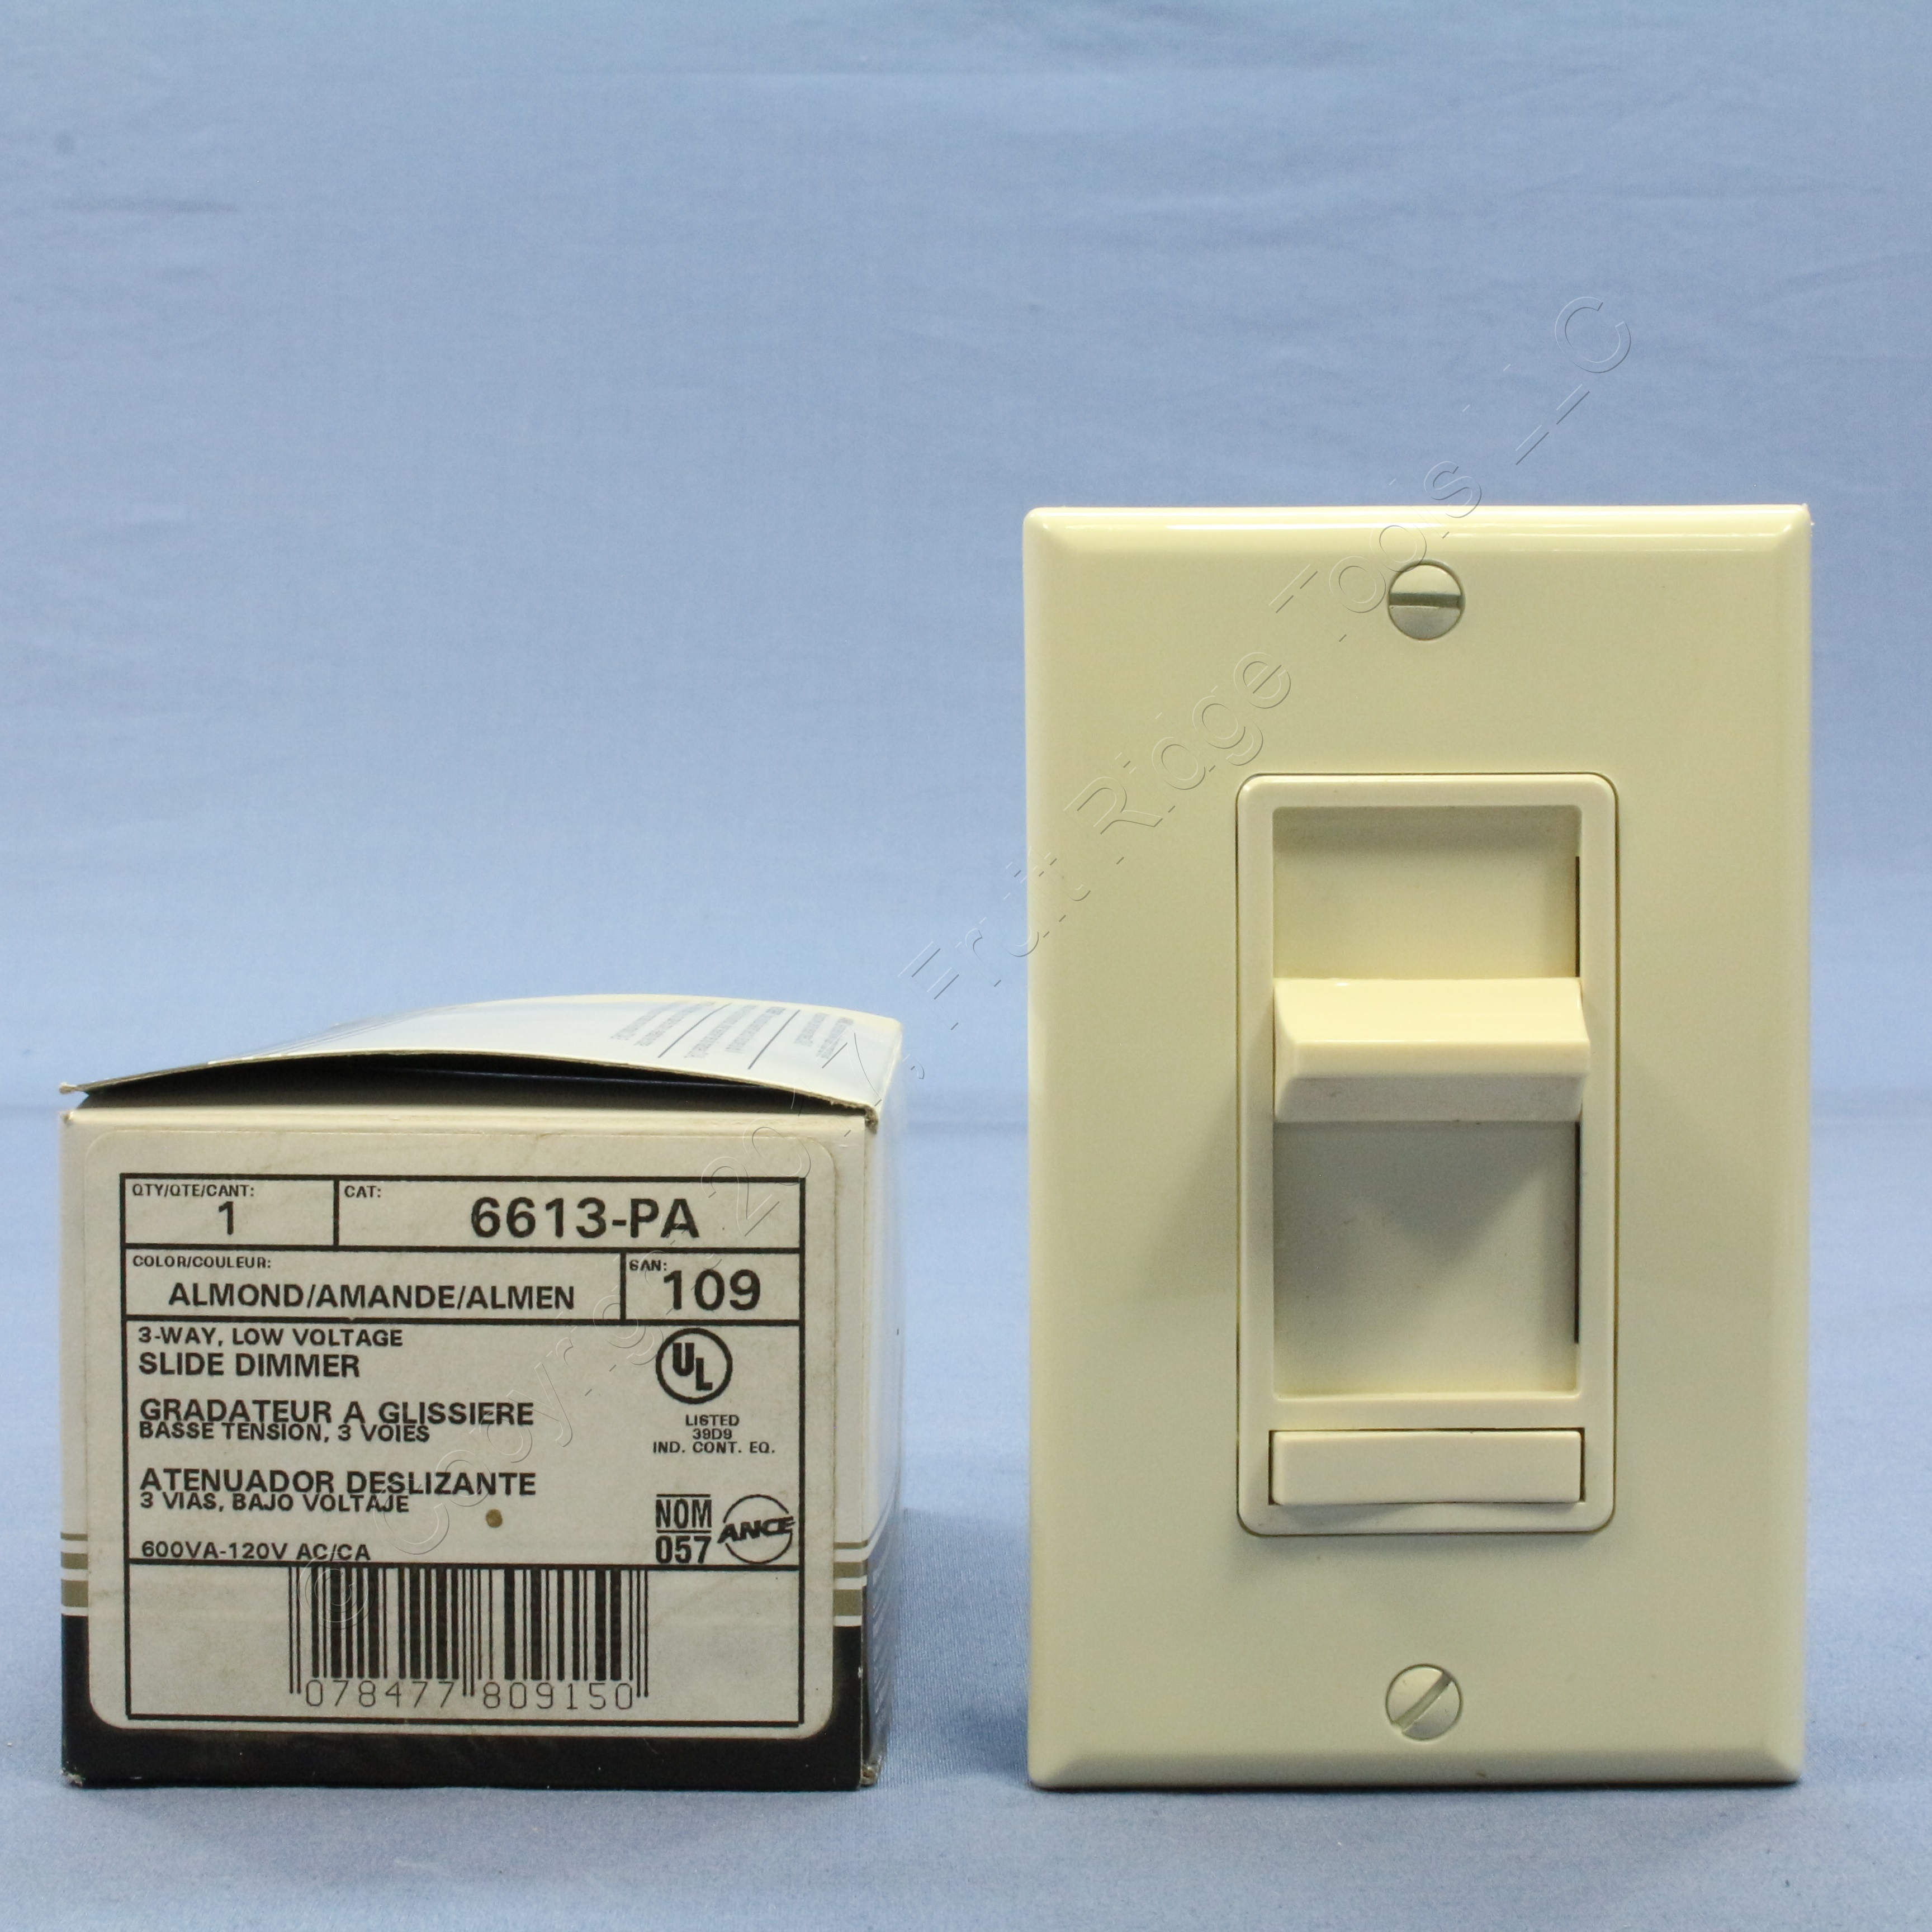 Shop Leviton Almond 3 Way Slide Light Dimmer Switch Preset Plate 600w Incandescent 600va Low Voltage Magnetic 6613 Pa Fruit Ridge Tools